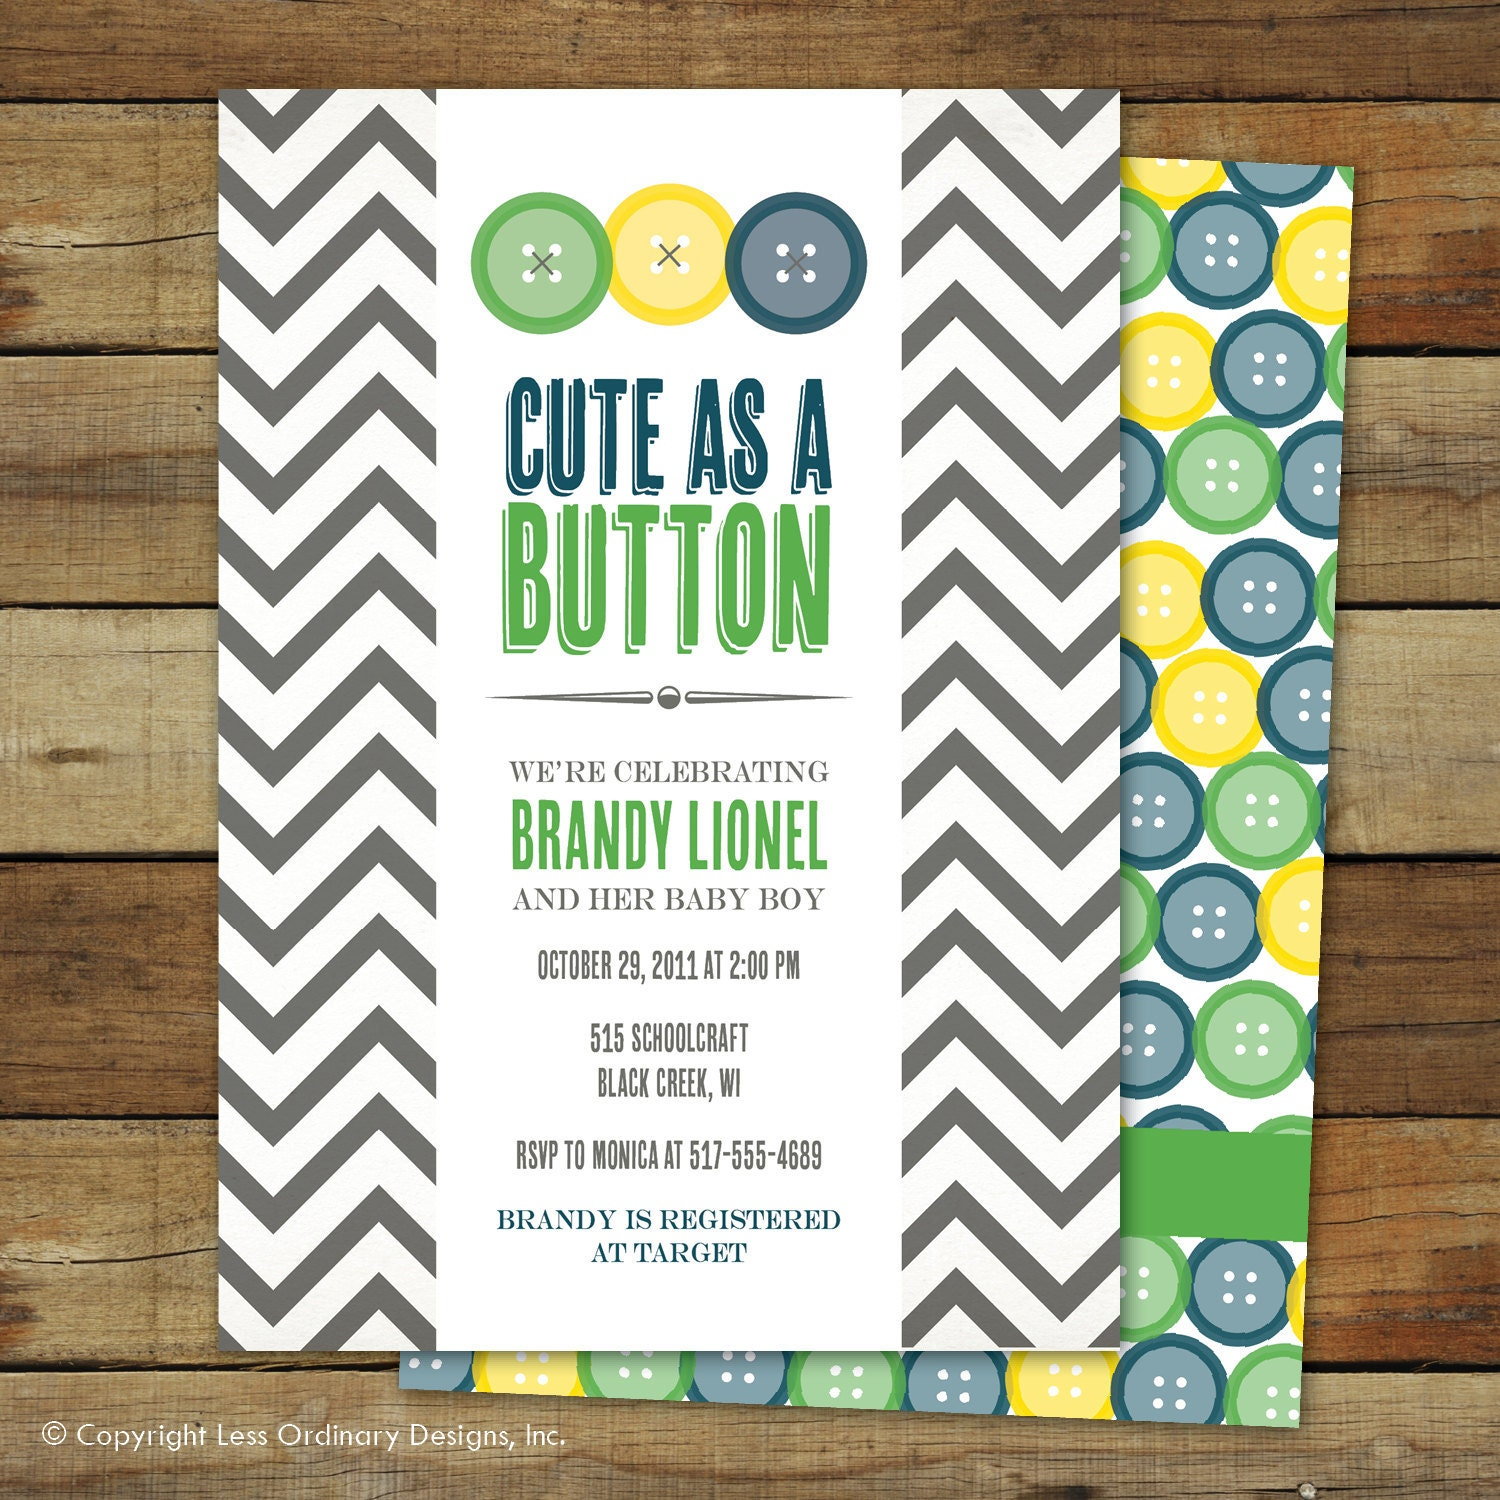 Baby Shower Boy Invitation: Cute As A Button Baby Shower Invitation Baby Boy Matching